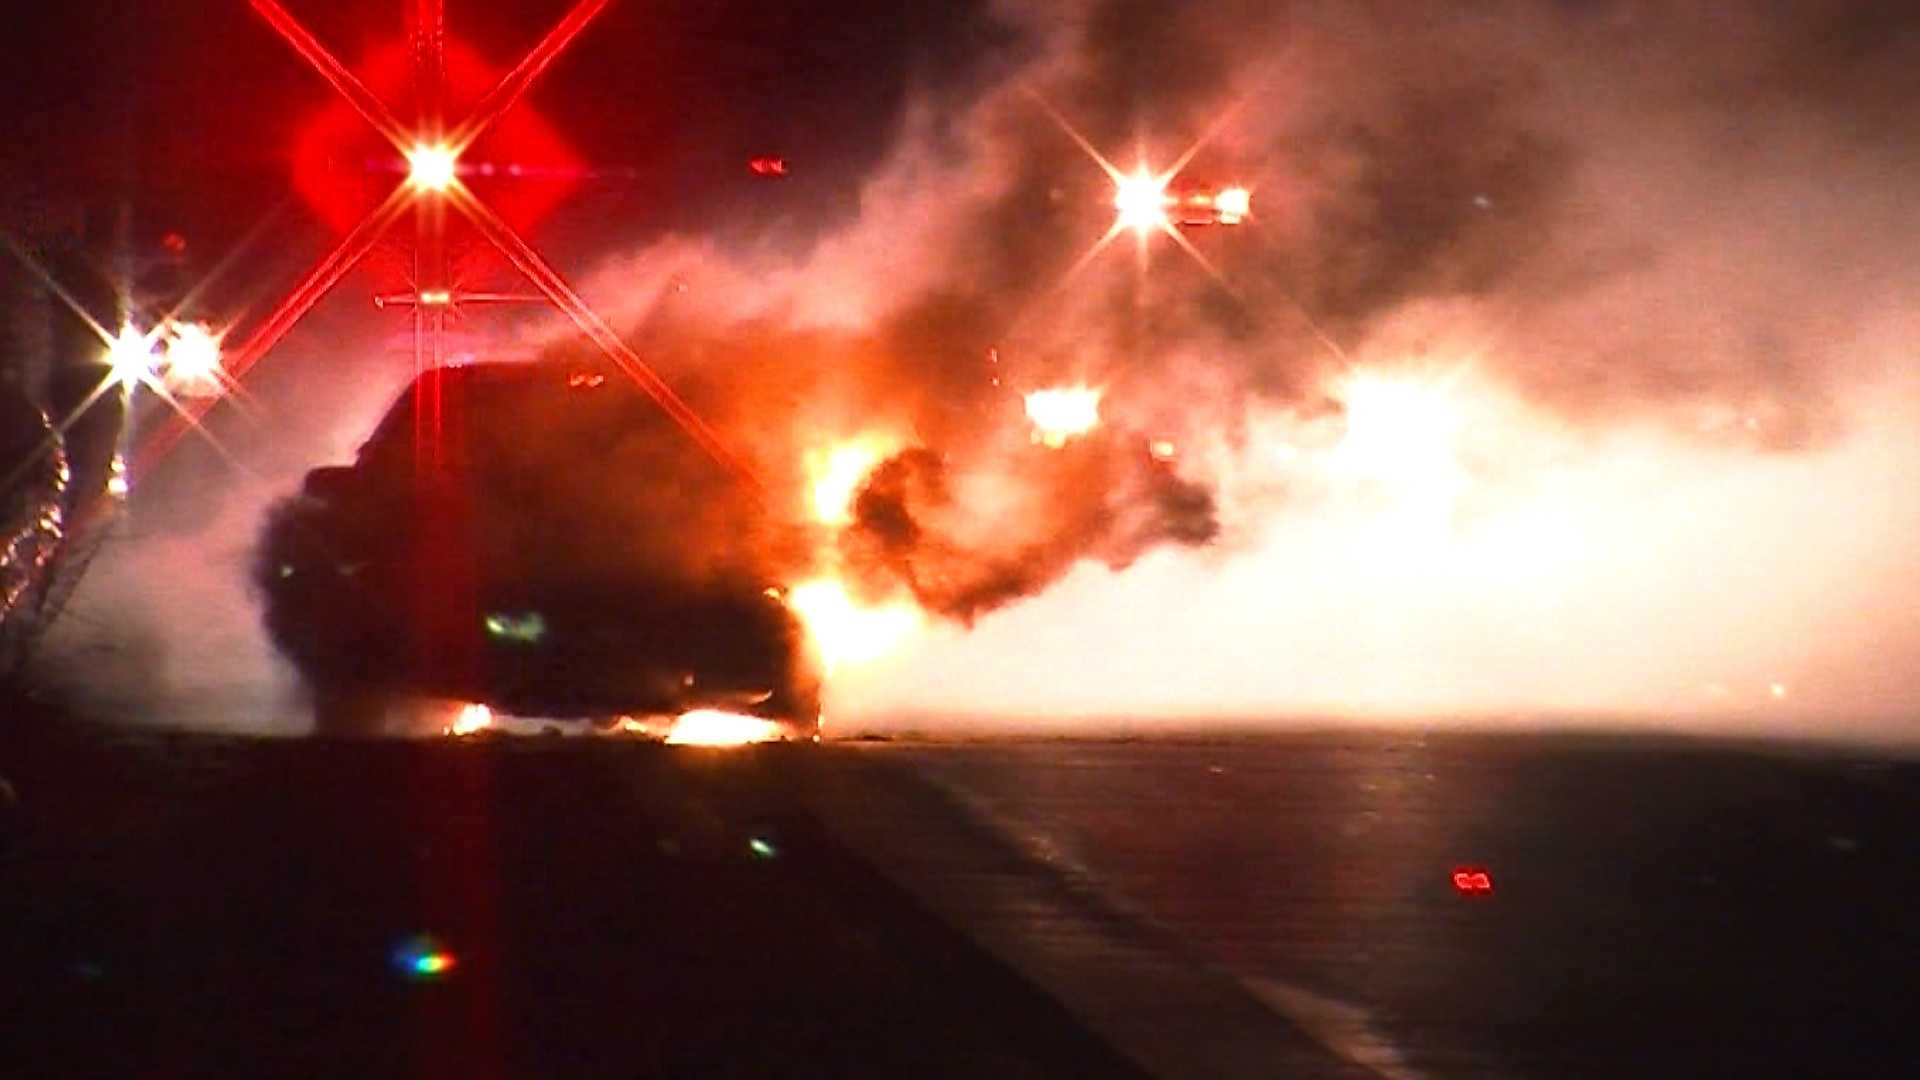 A car fire shut down part of Interstate 89 southbound Thursday. There are no reports of any injuries.